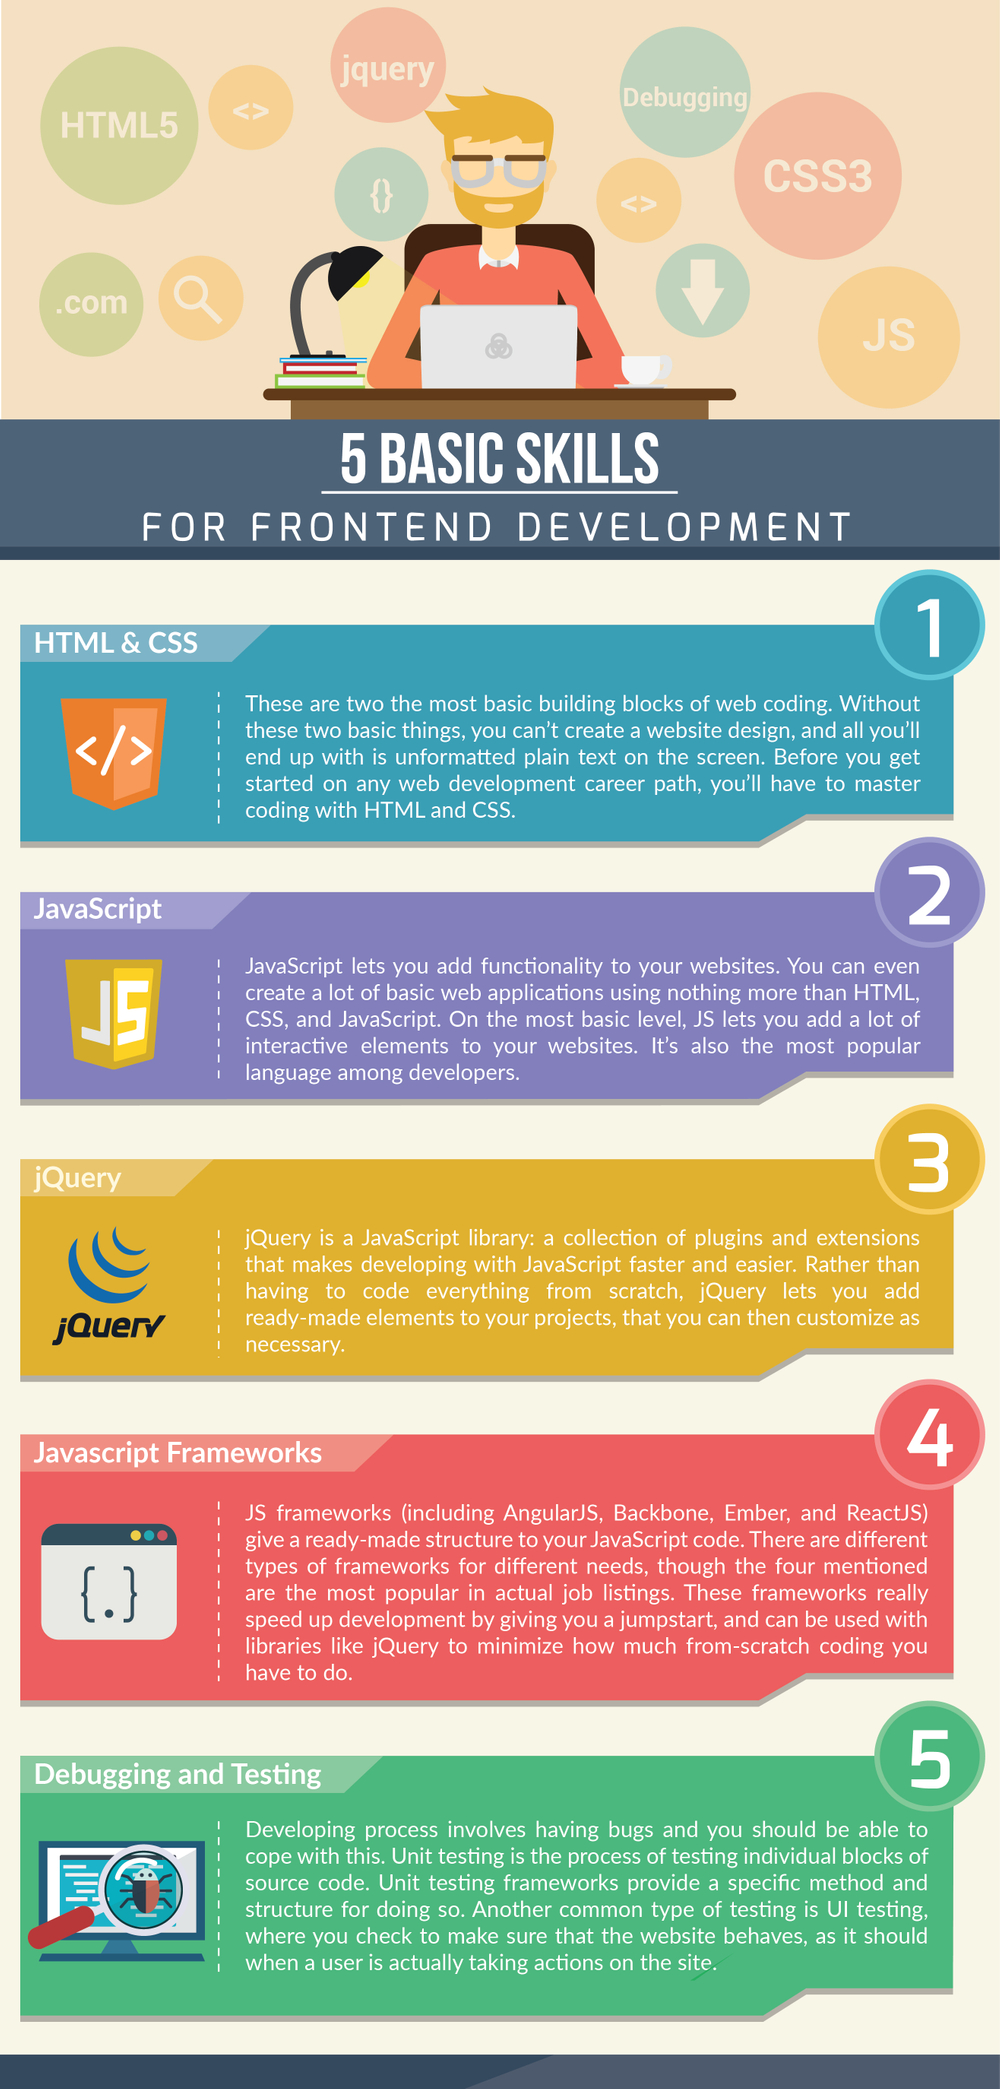 Image shows five basic skills for frontend developer: html, css, javascript, jquery, javascript frameworks, debugging and testing